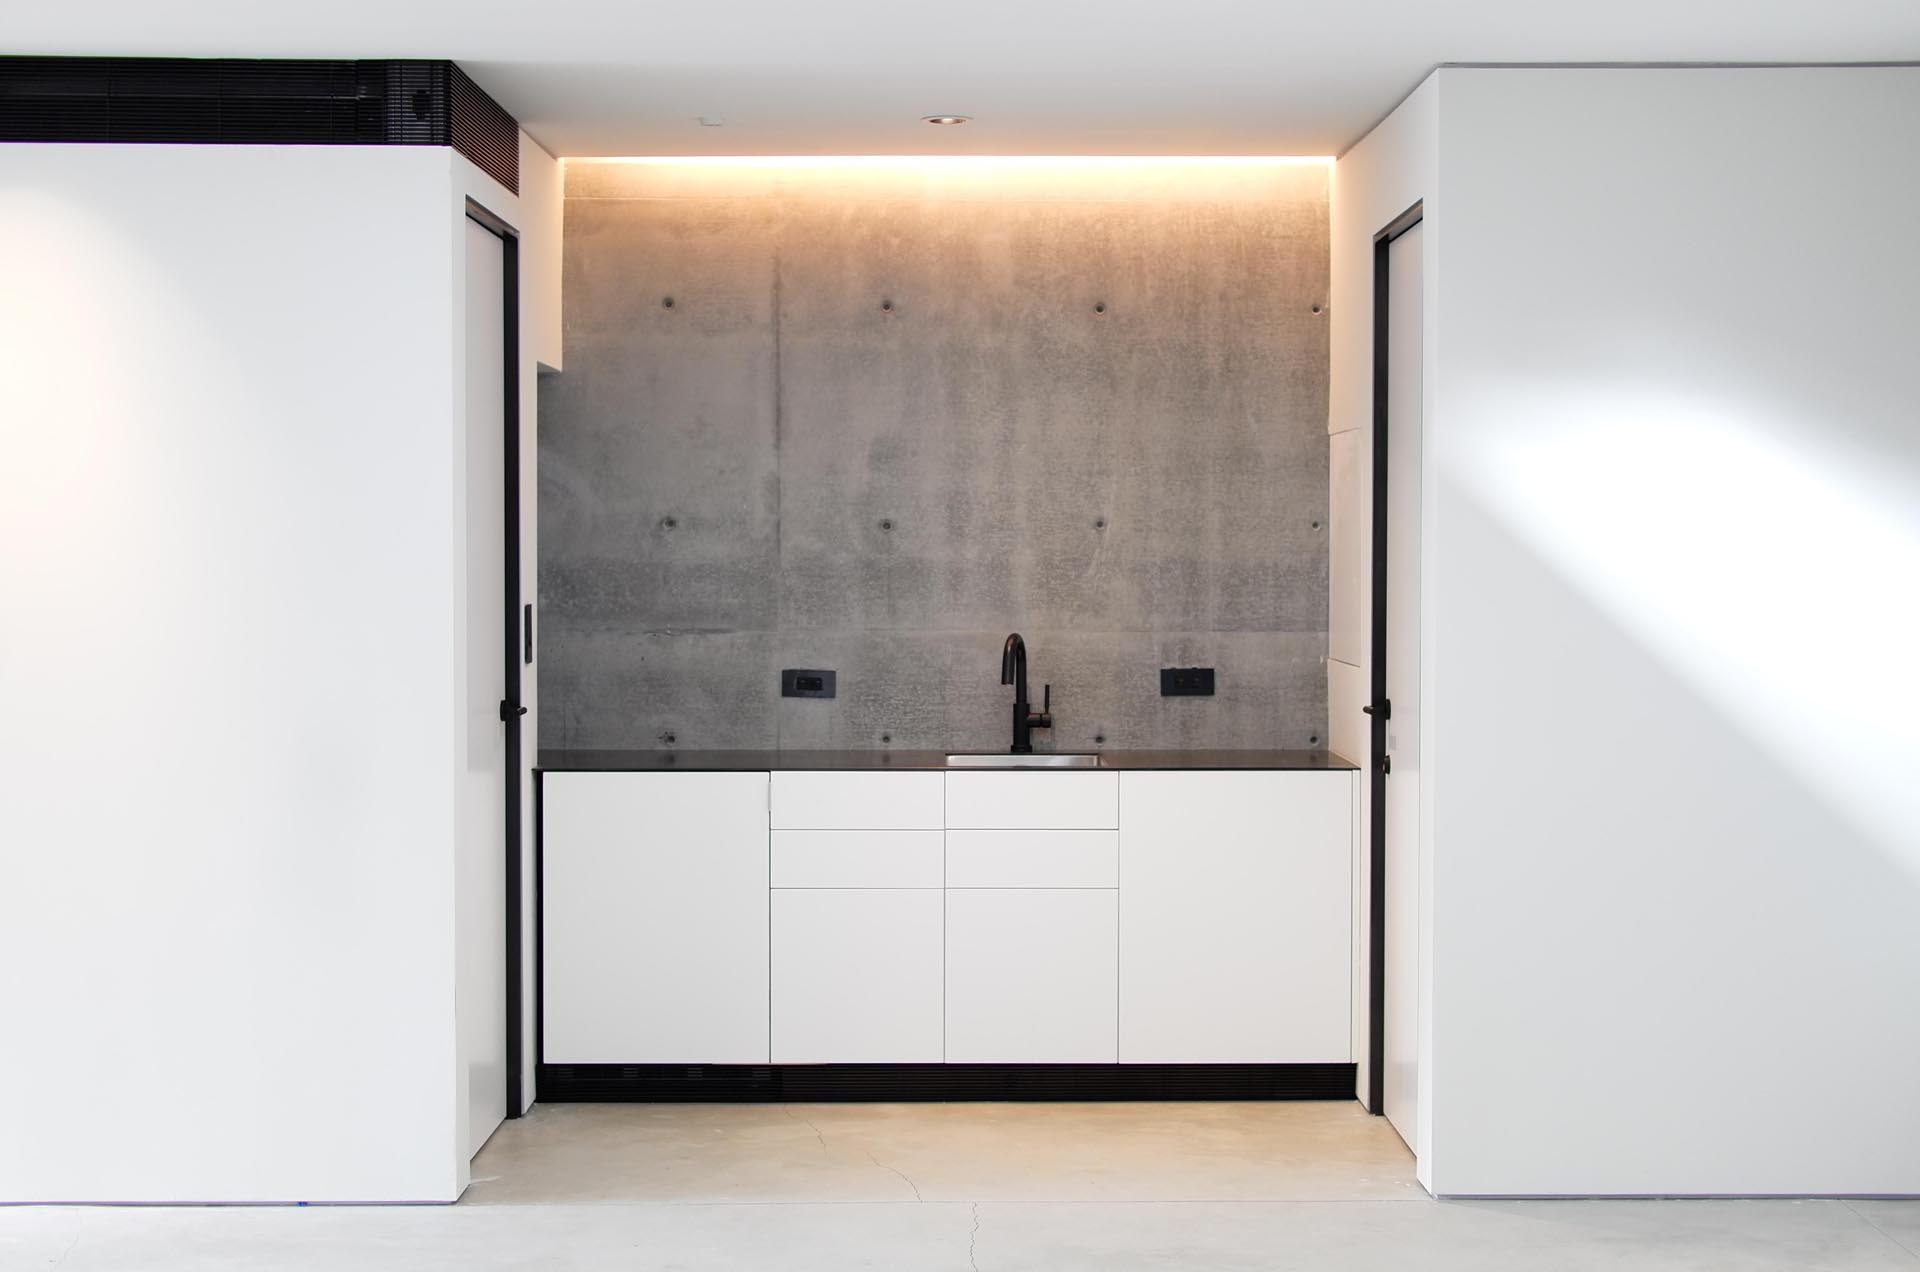 A built-in kitchenette highlighted by hidden lighting.